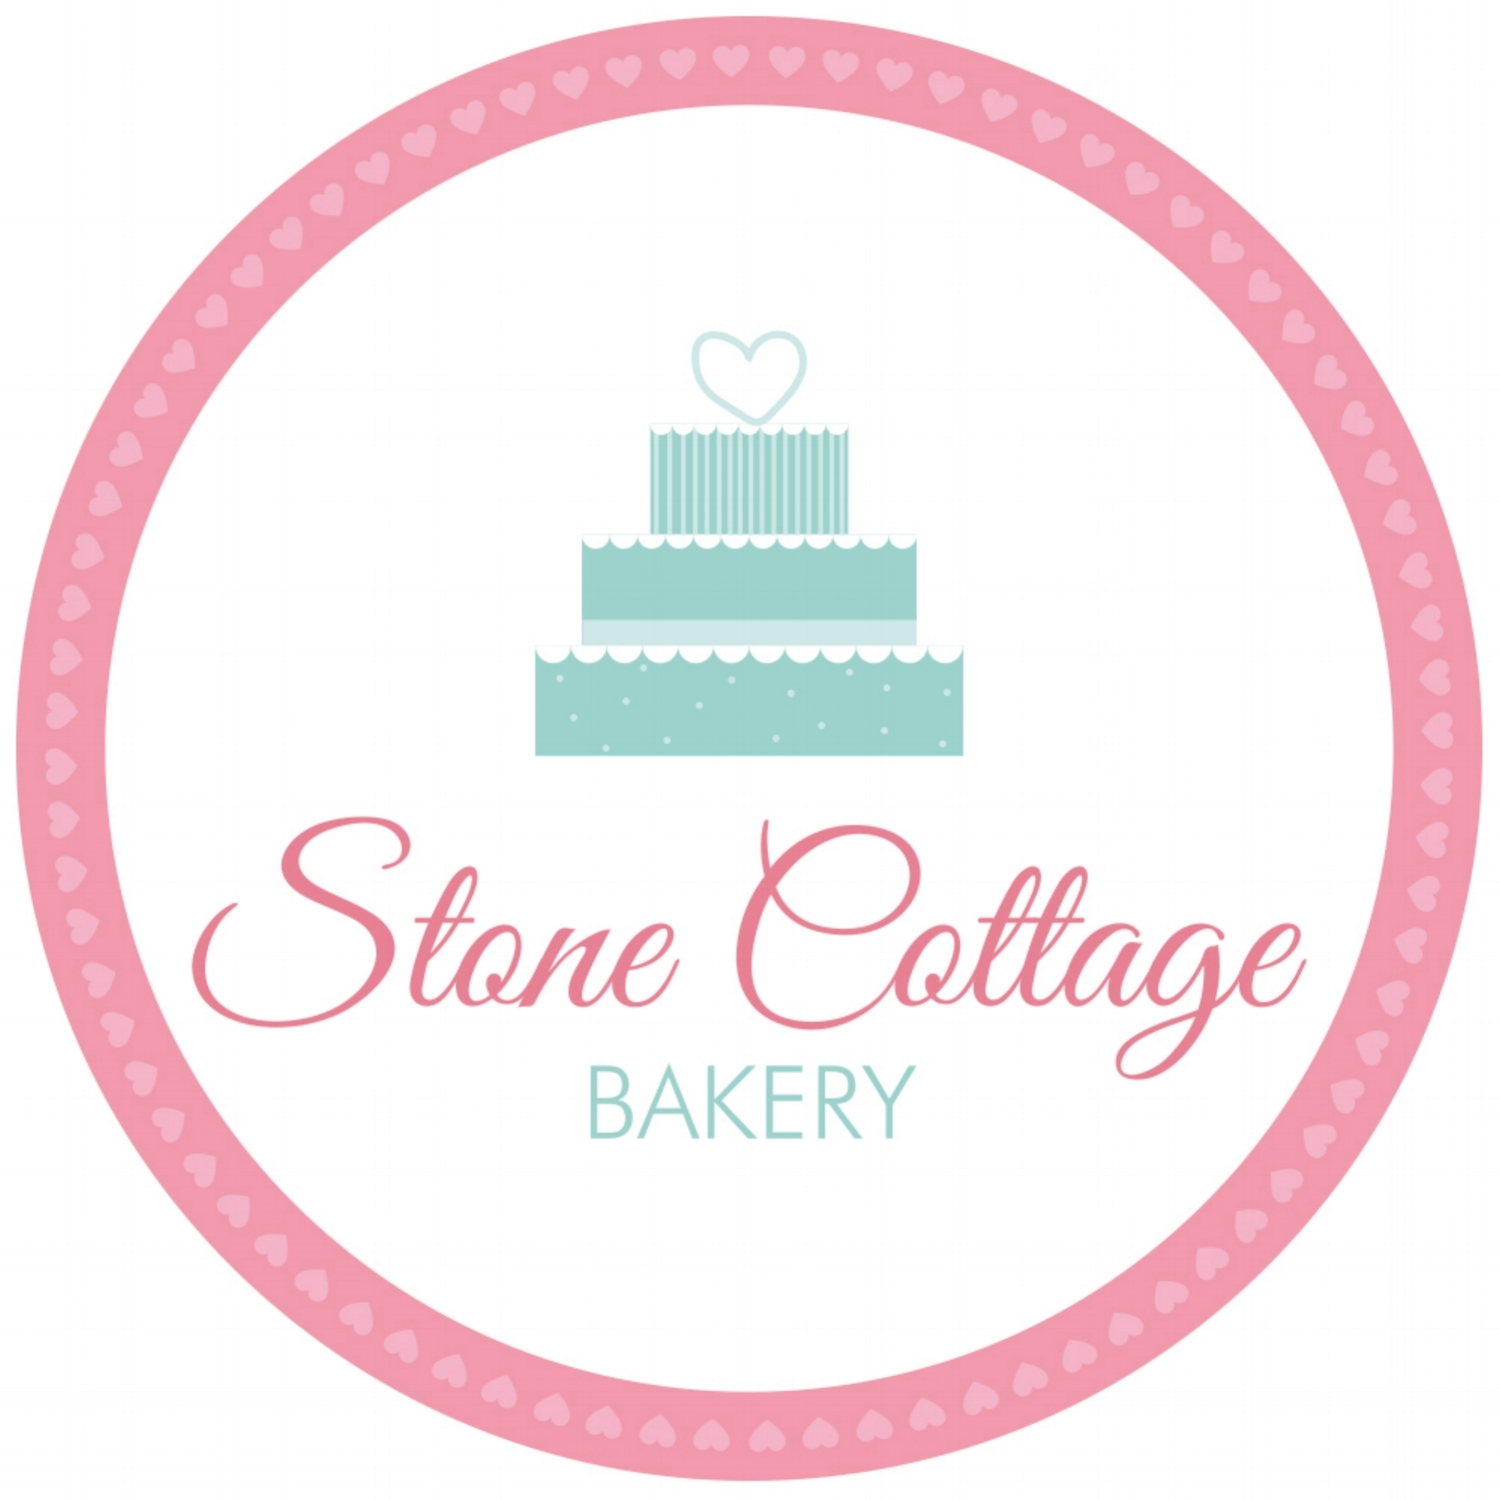 The Stone Cottage Bakery